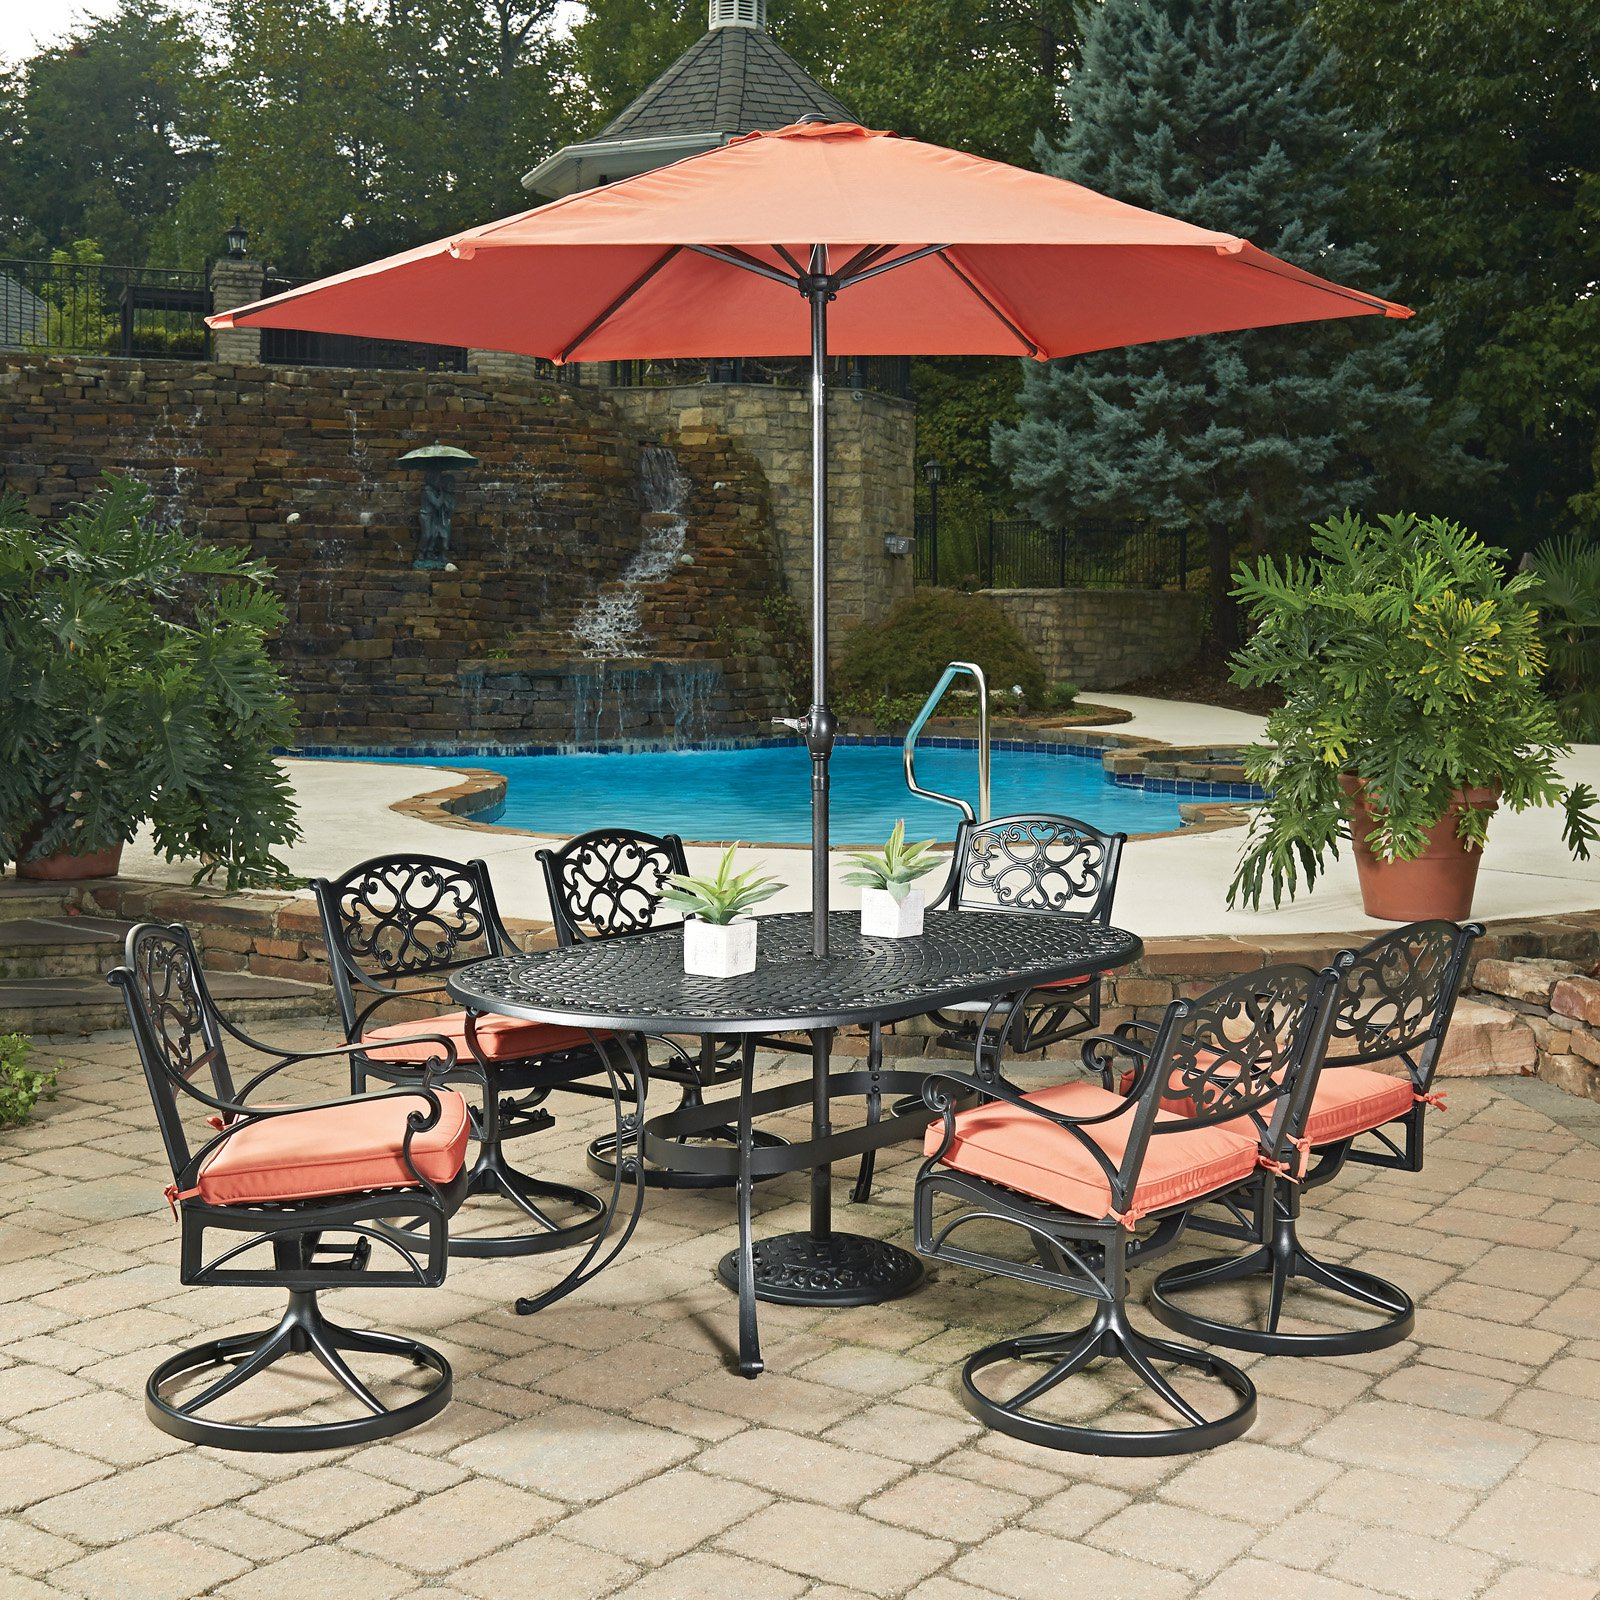 Biscayne Black Oval 9 Pc Outdoor Dining Table, 6 Arm Chairs with Cushions & Umbrella with Base